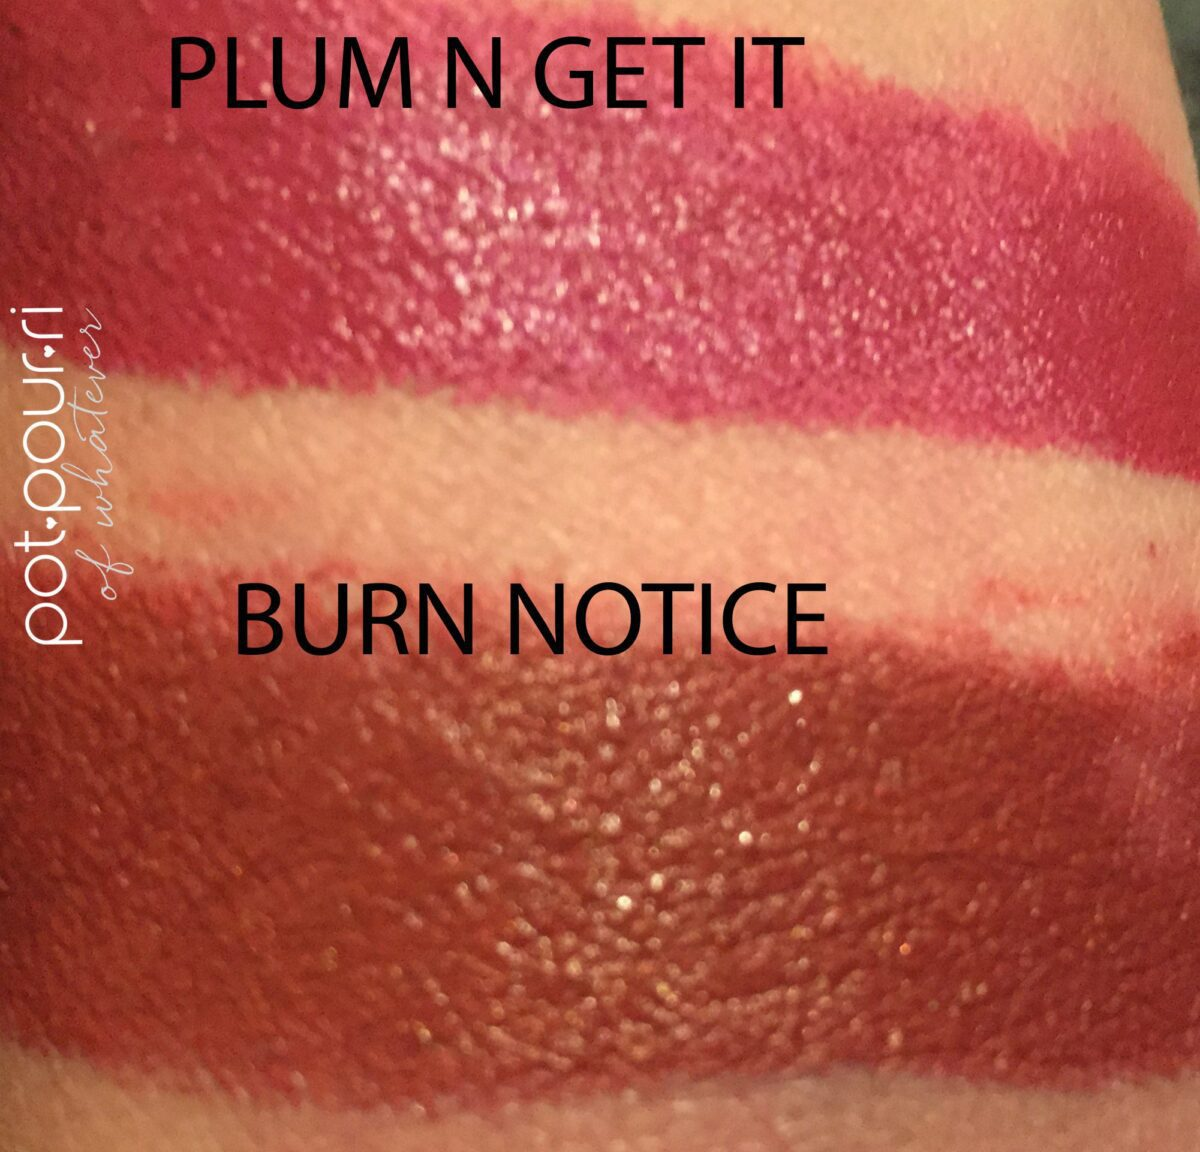 Le-Marc-Jacobs-swatches-liquid-lip-crayon-top-plum-n-get-it-bottom-burn-notice